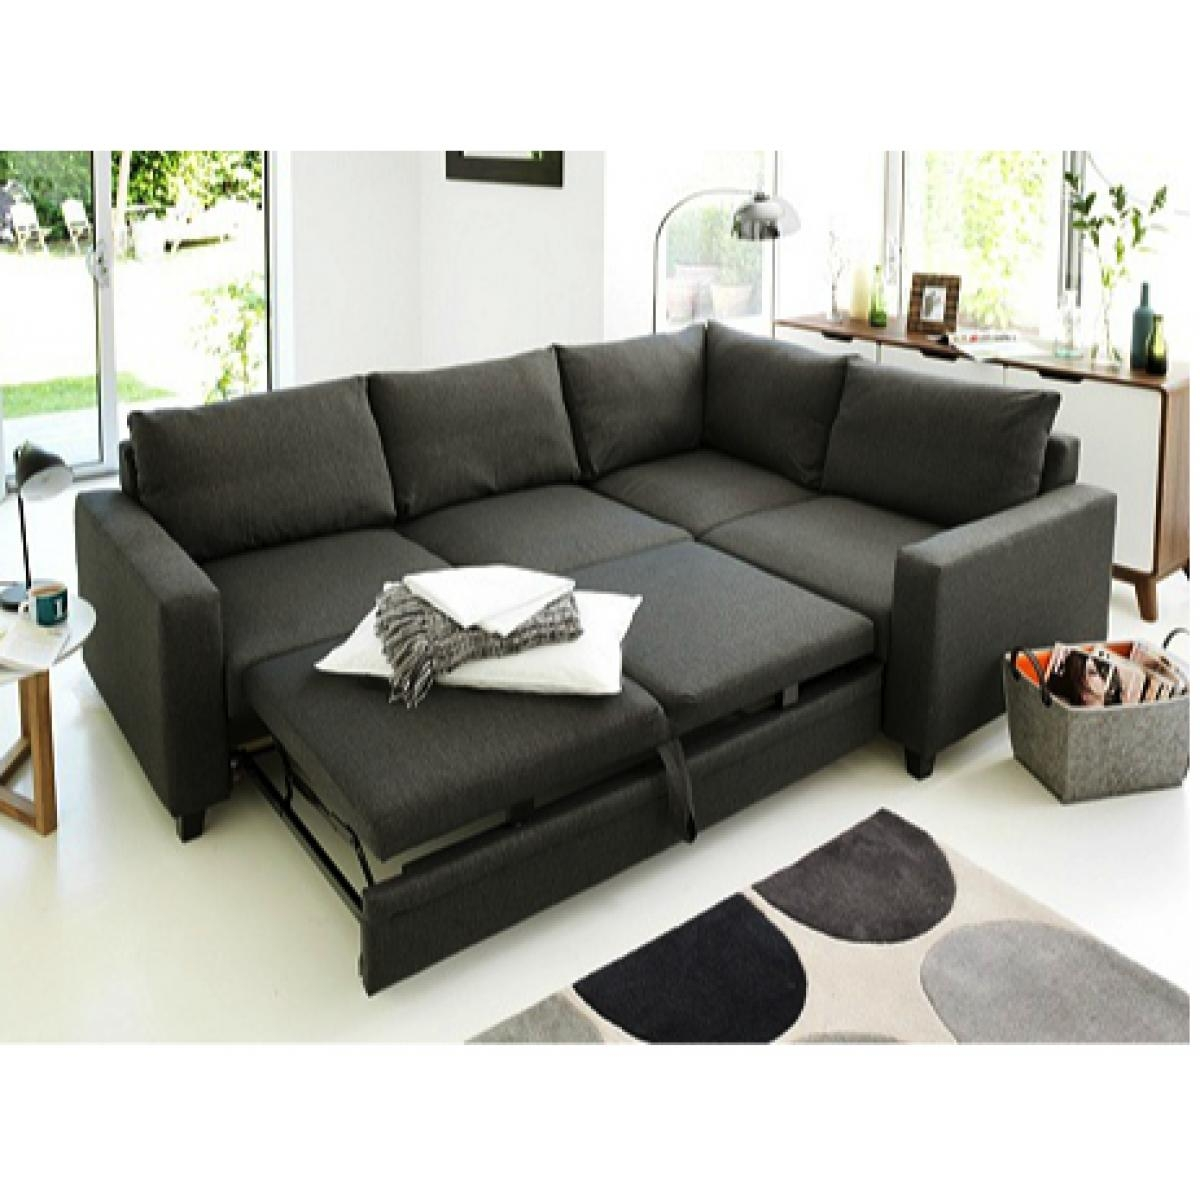 sofa beds leather cheap new set images 20 photos corner bed ideas